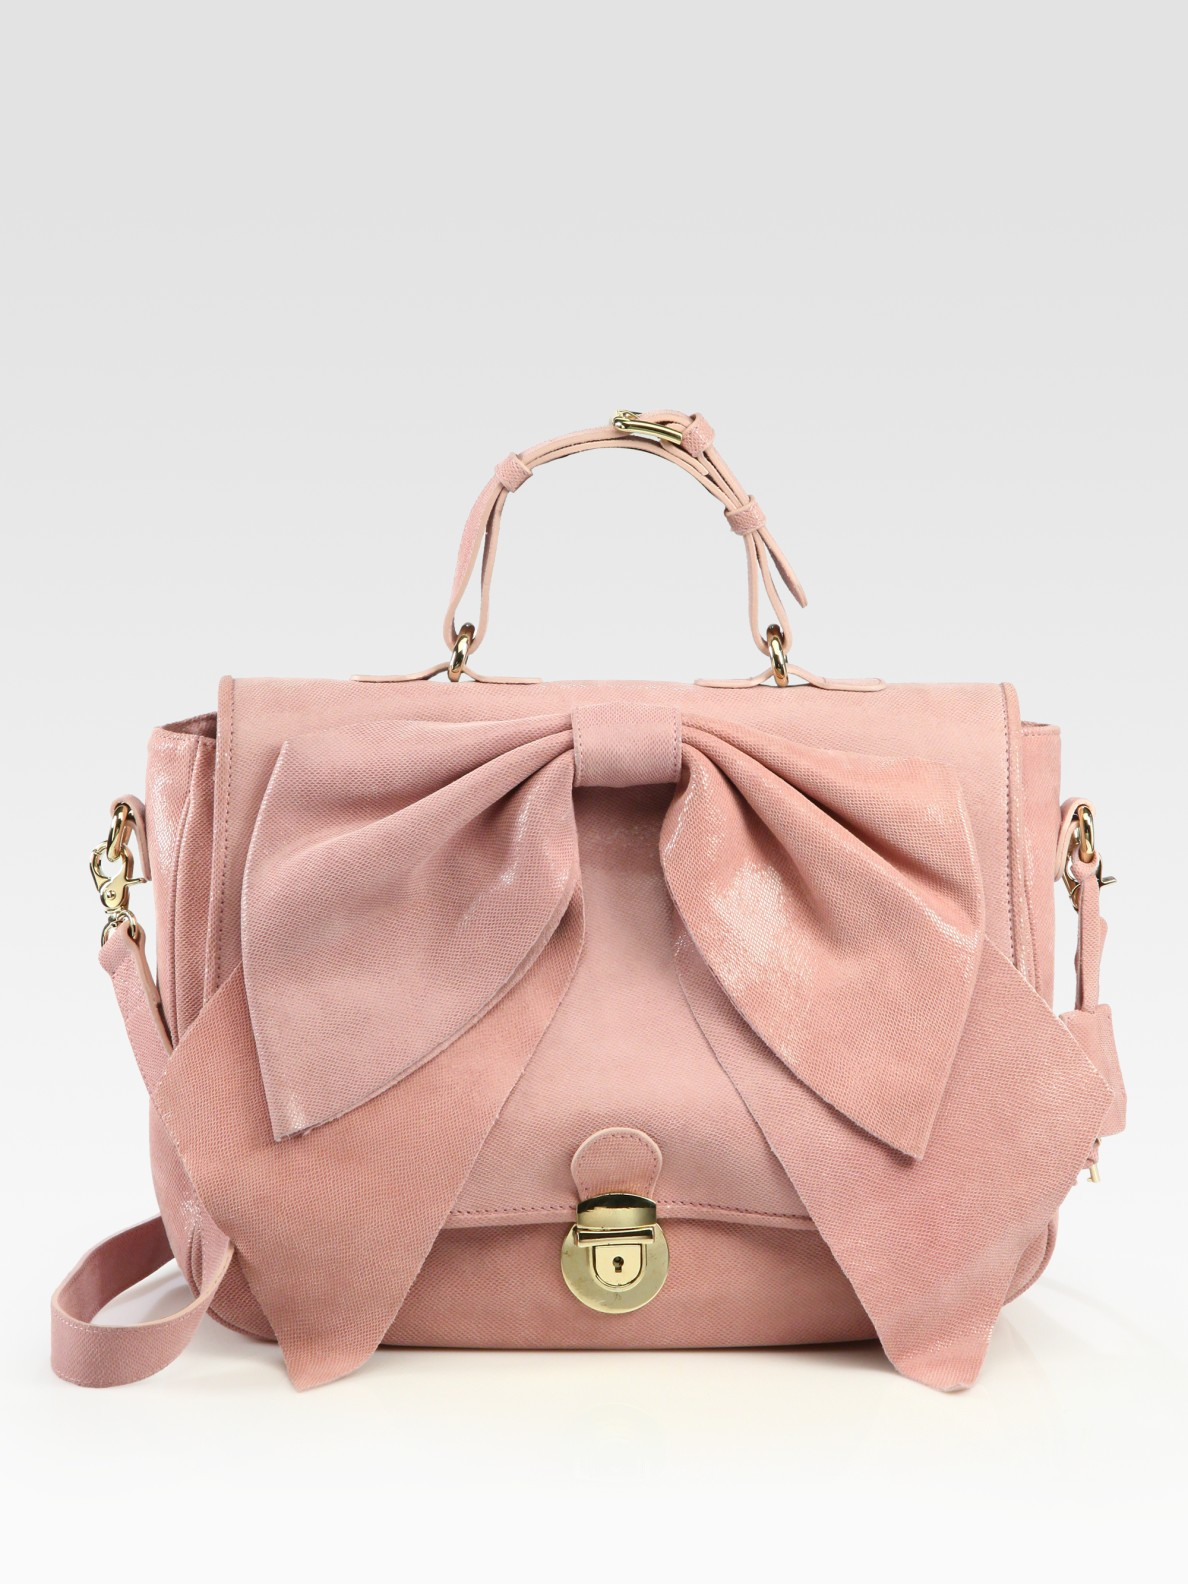 Red valentino Bow Top Handle Bag in Pink | Lyst